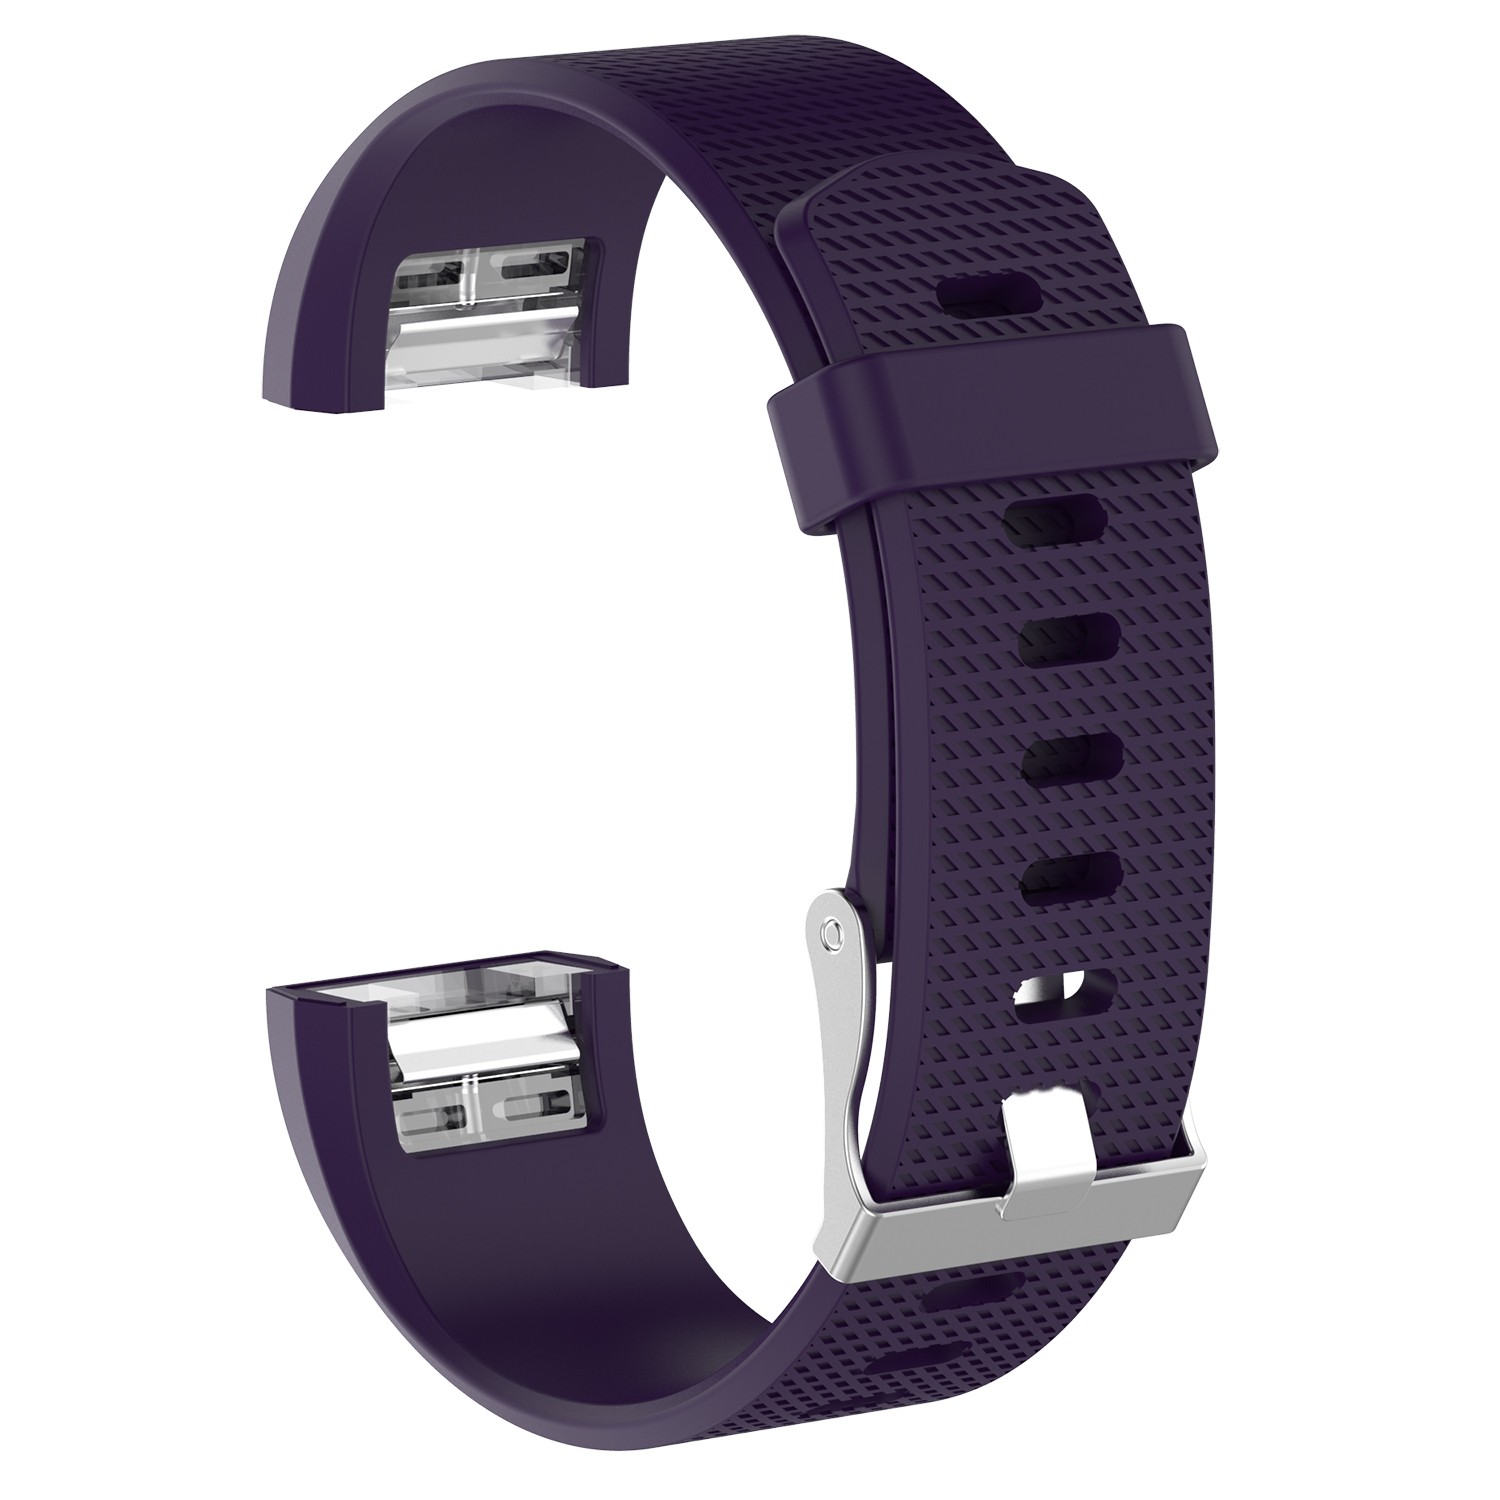 Replacement-Silicone-Wristband-Watch-Strap-Bands-Bracelet-For-Fitbit-Charge-2 thumbnail 68